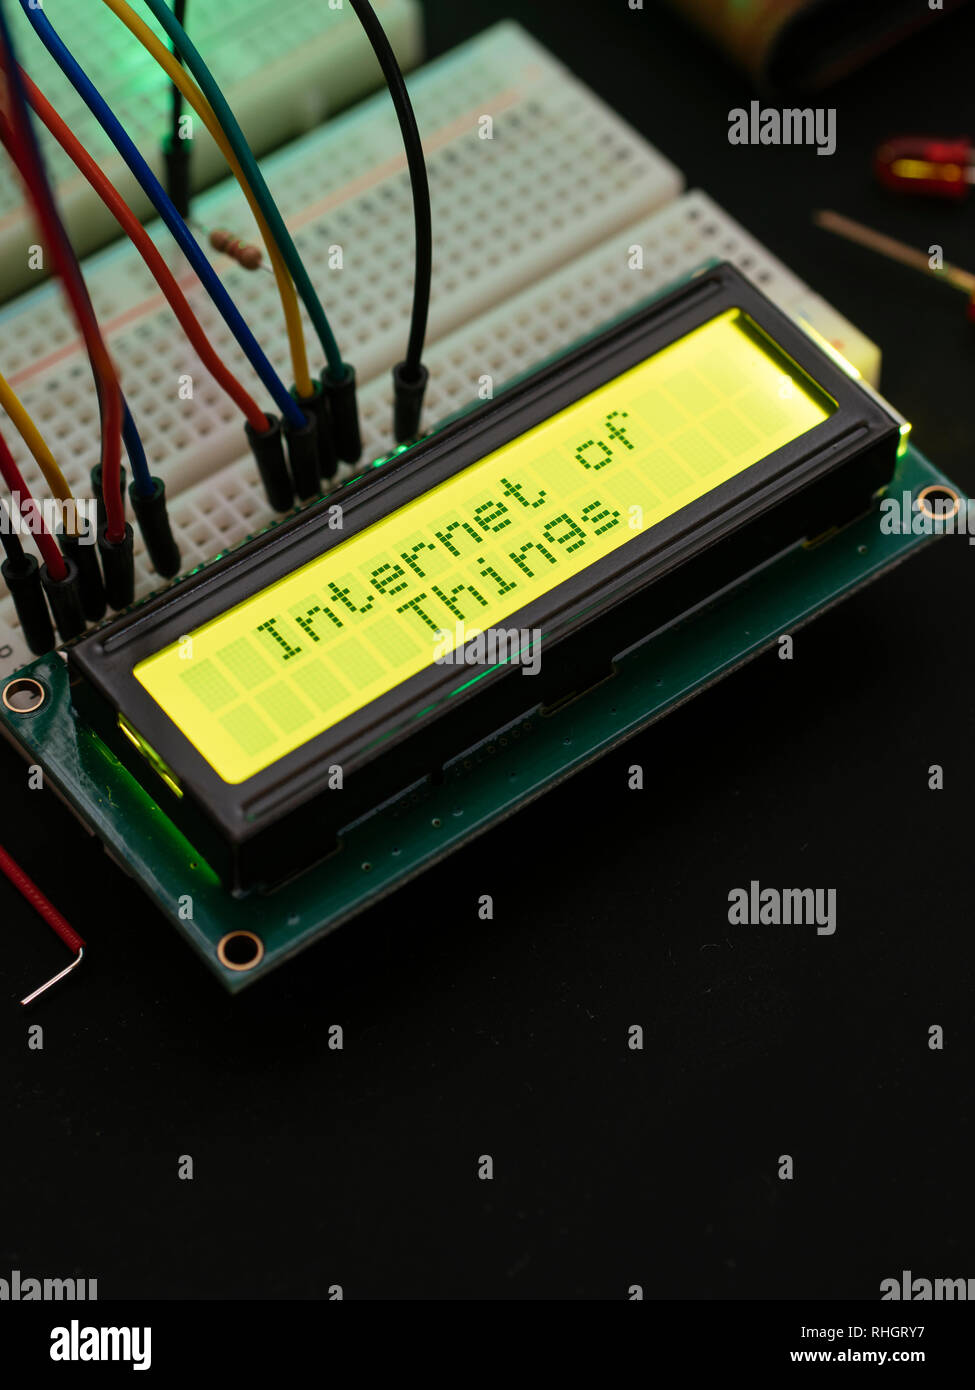 LCD display connected to a microcontroller displaying the text 'Internet of things'. - Stock Image